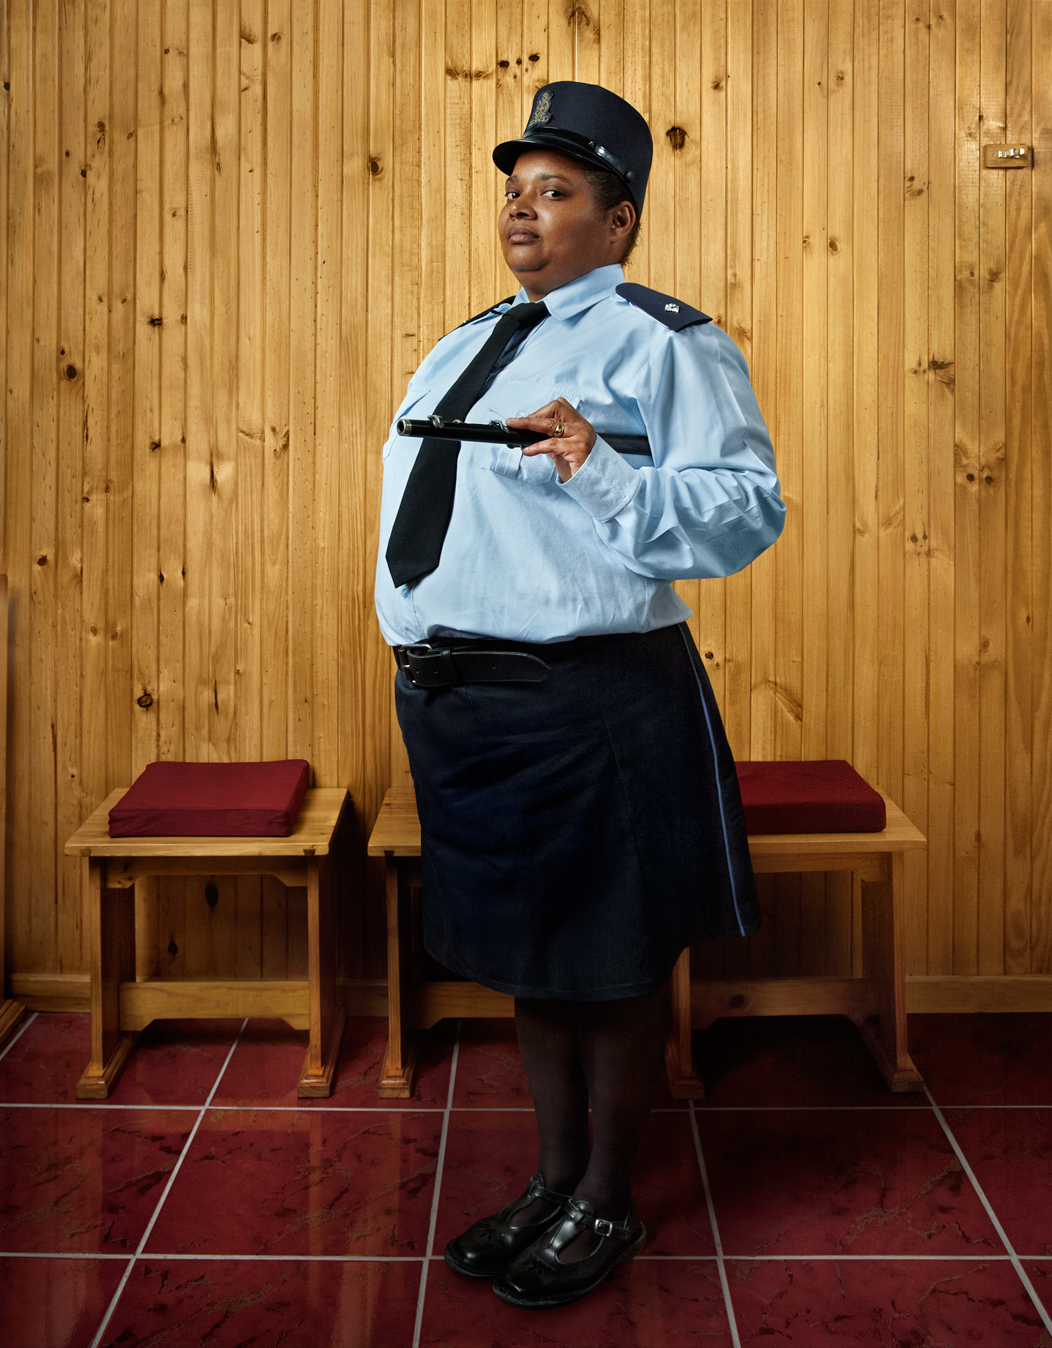 """Ruthy Goes to Church is a photographic documentary series about Ruth Jones, resident of Manenberg, a township outside Cape Town, South Africa. Ruthy Goes to Church is the 2nd part of Julia's ongoing project """"Proud Women of Africa"""" - a collection of short visual stories that portrays the daily lives of remarkable women living or working in Africa."""